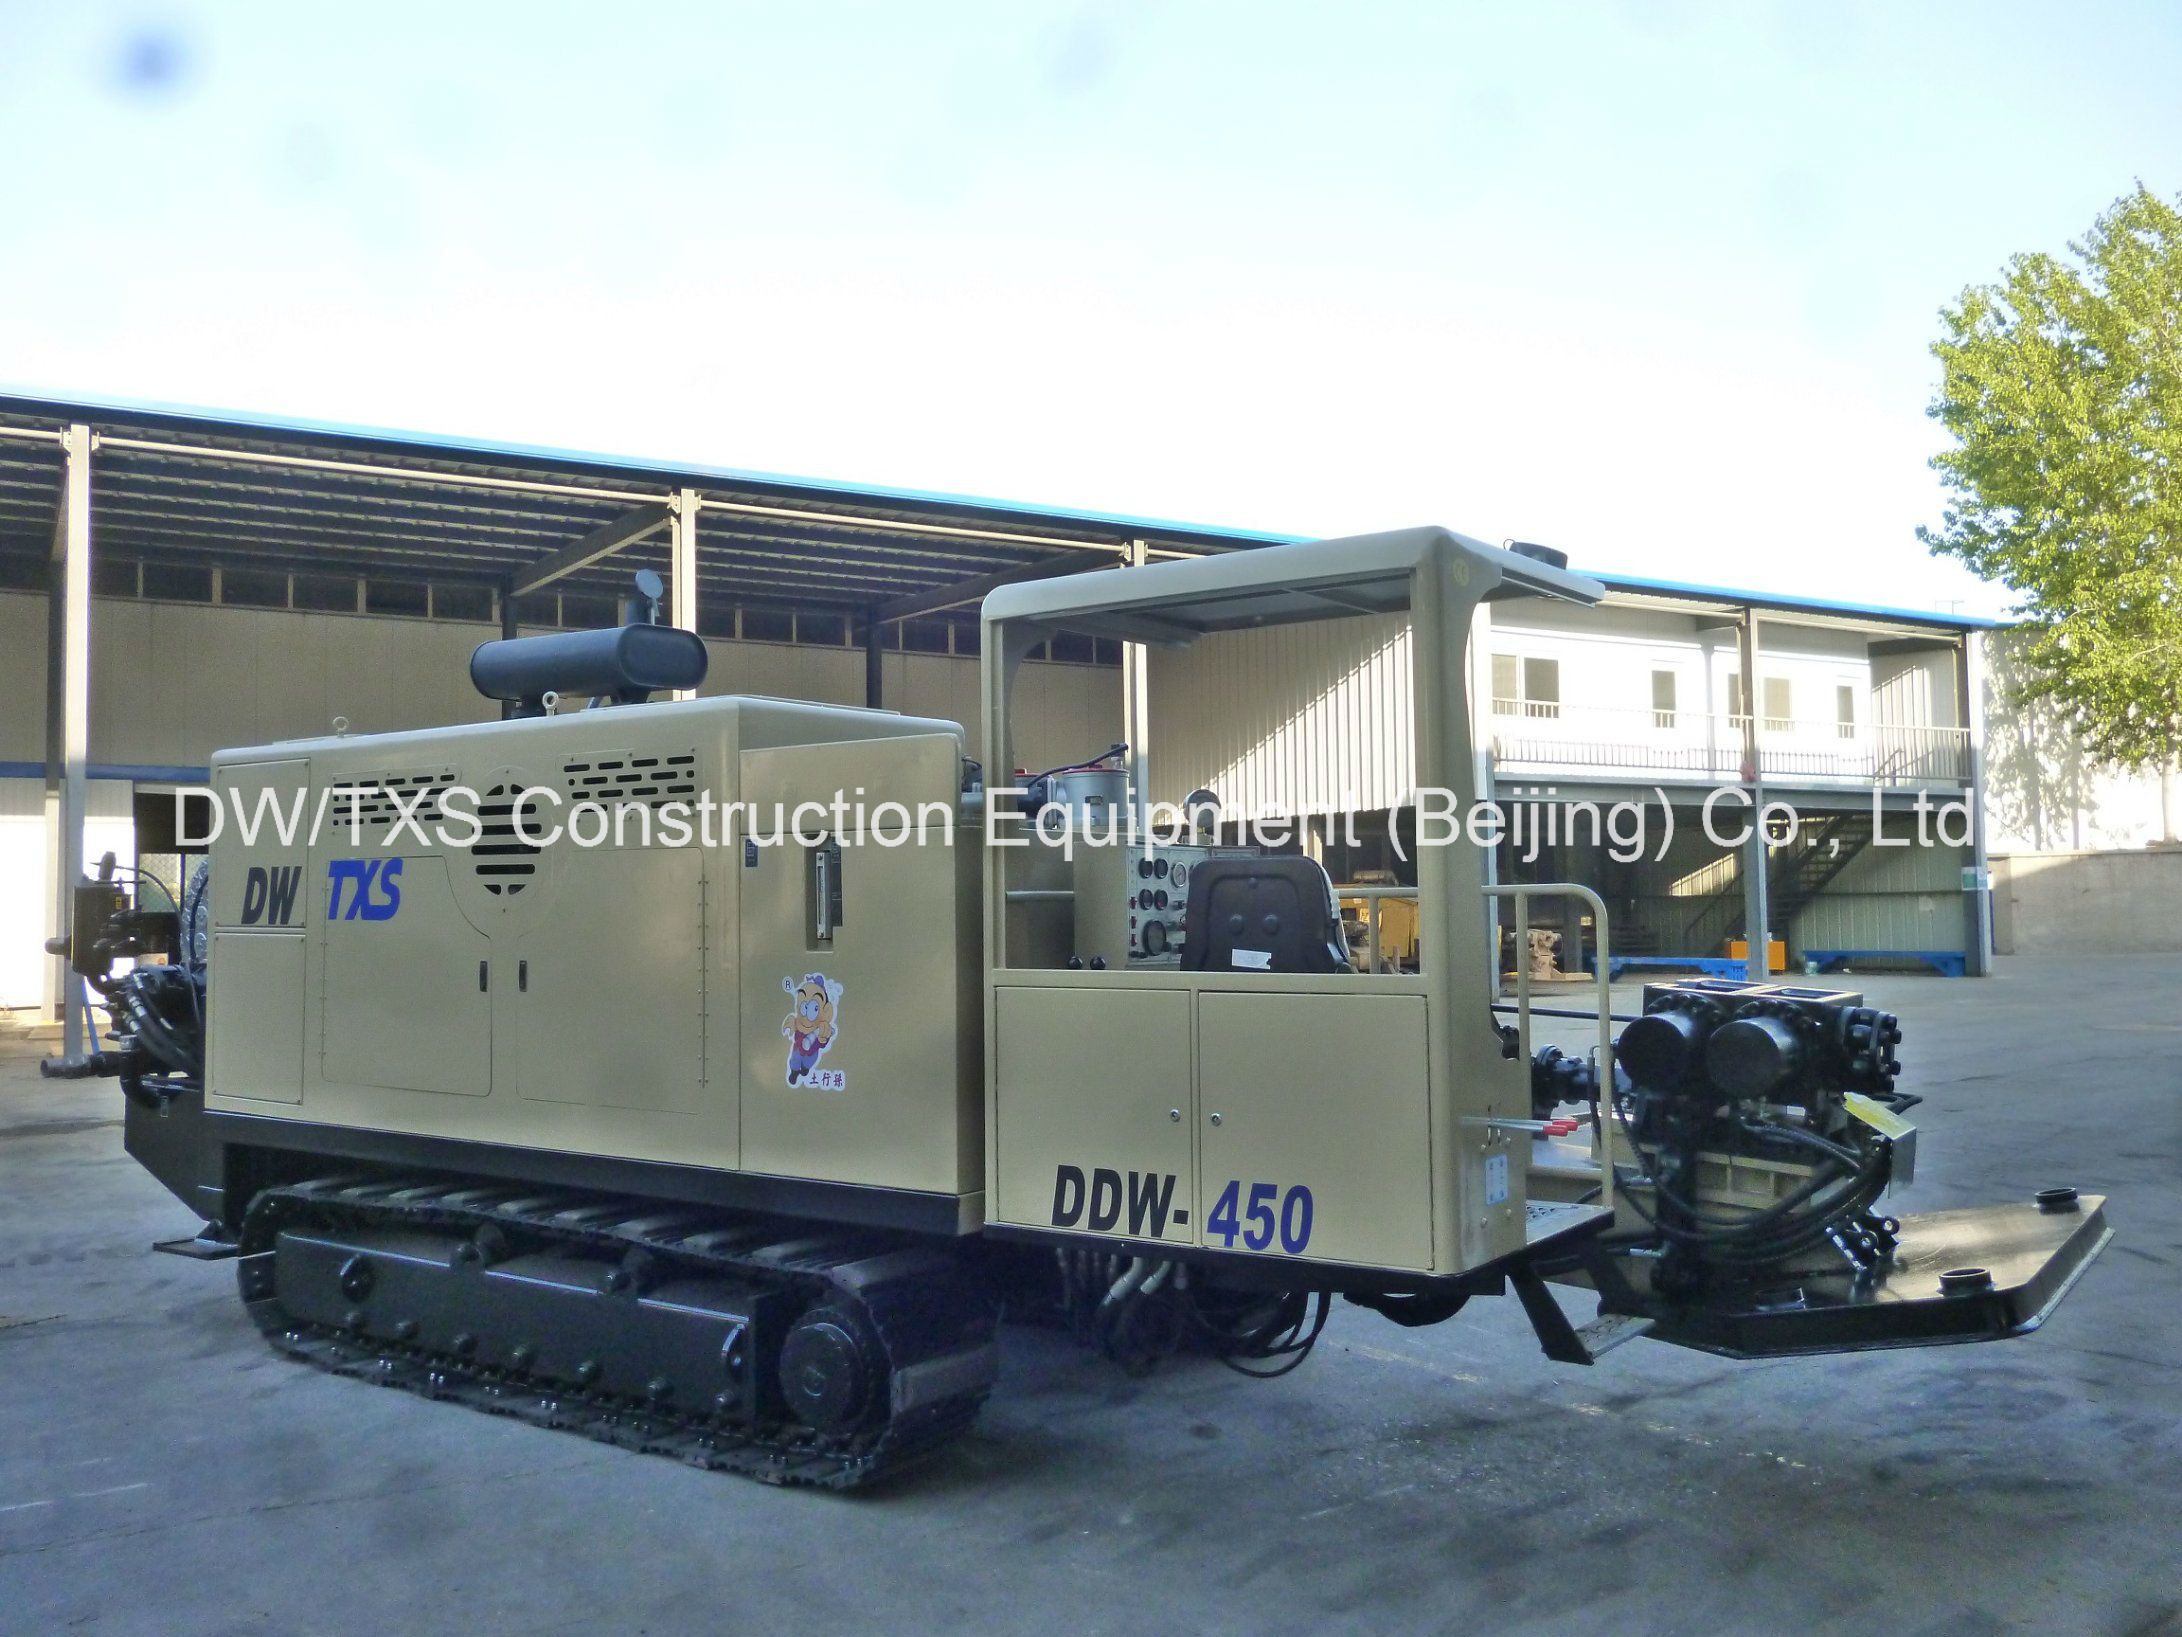 HDD Horizontal Directional Drilling Rig Ddw-450, Trenchless Drill Rig